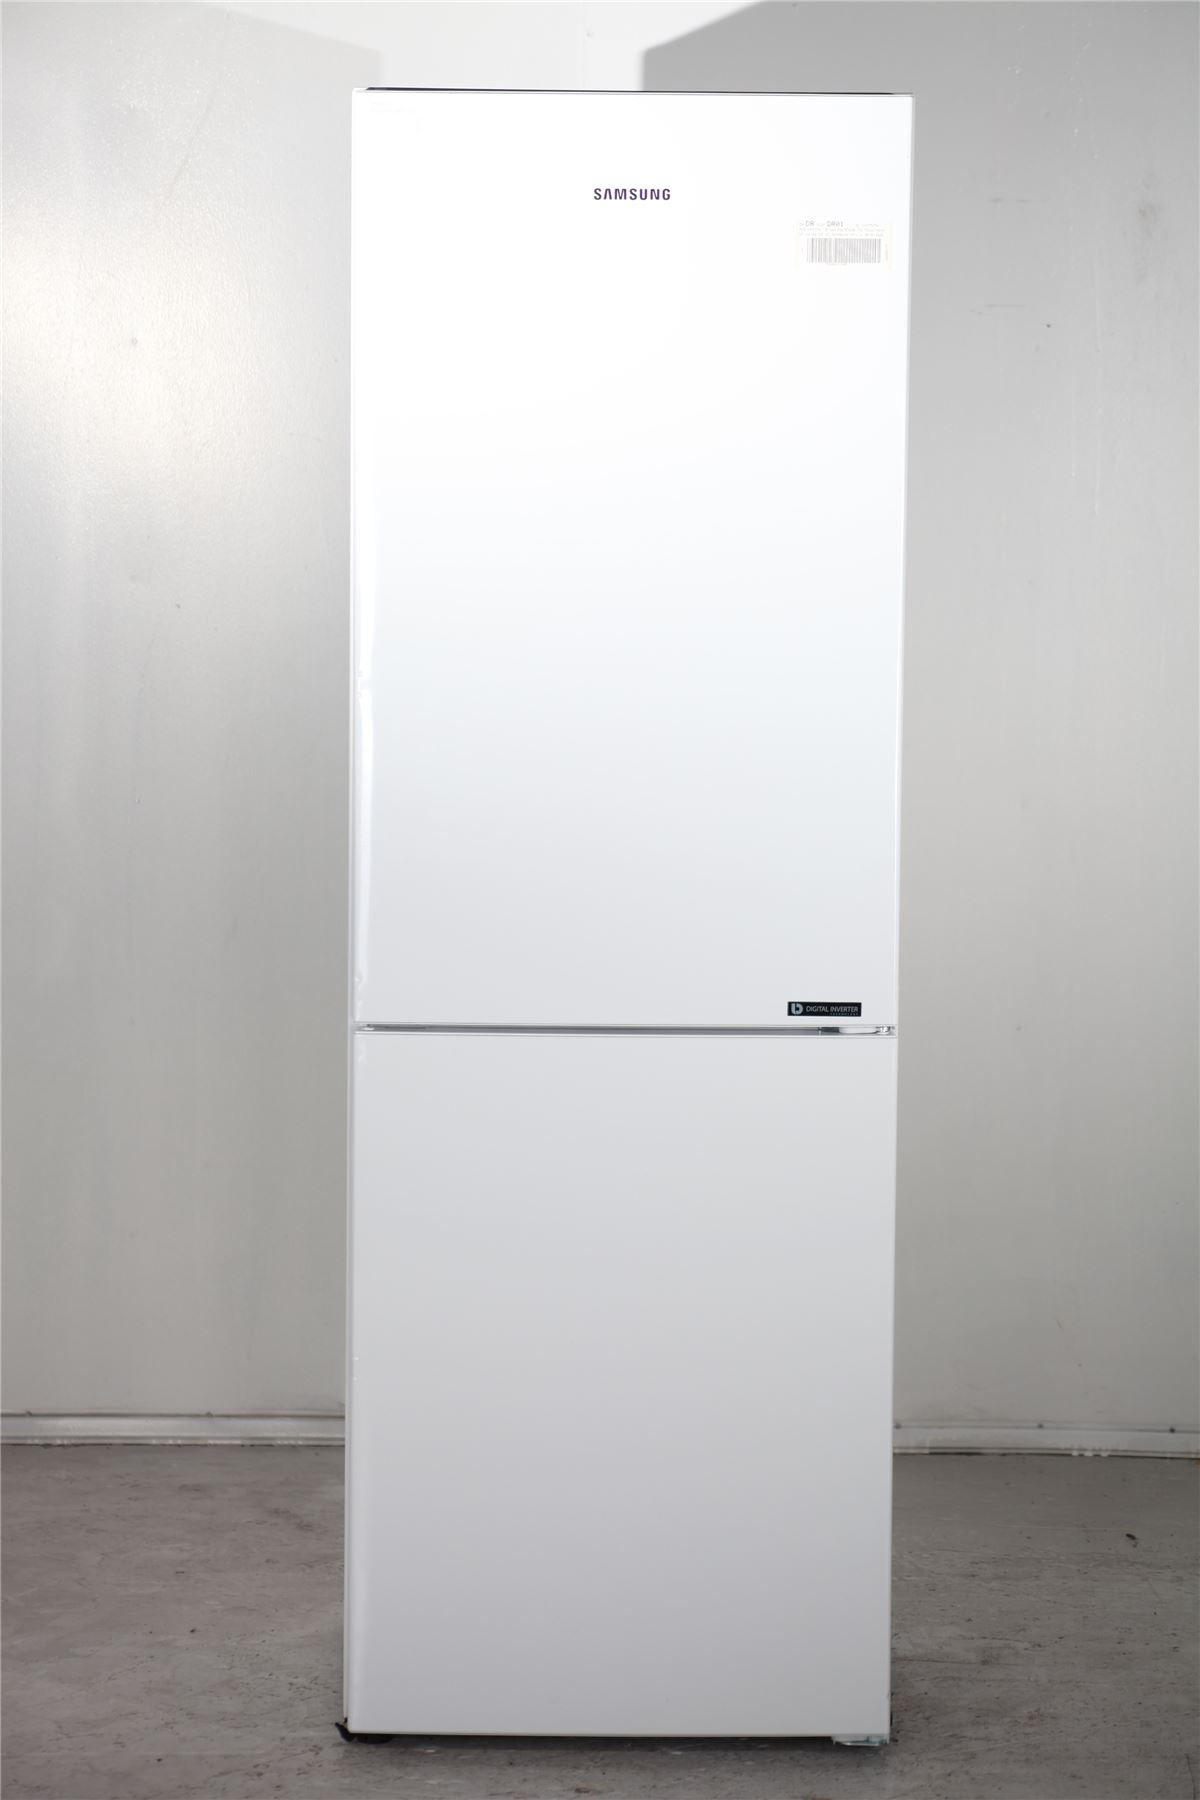 preloved samsung fridge freezer rb29fwjndsa white for sale in edmonton london. Black Bedroom Furniture Sets. Home Design Ideas